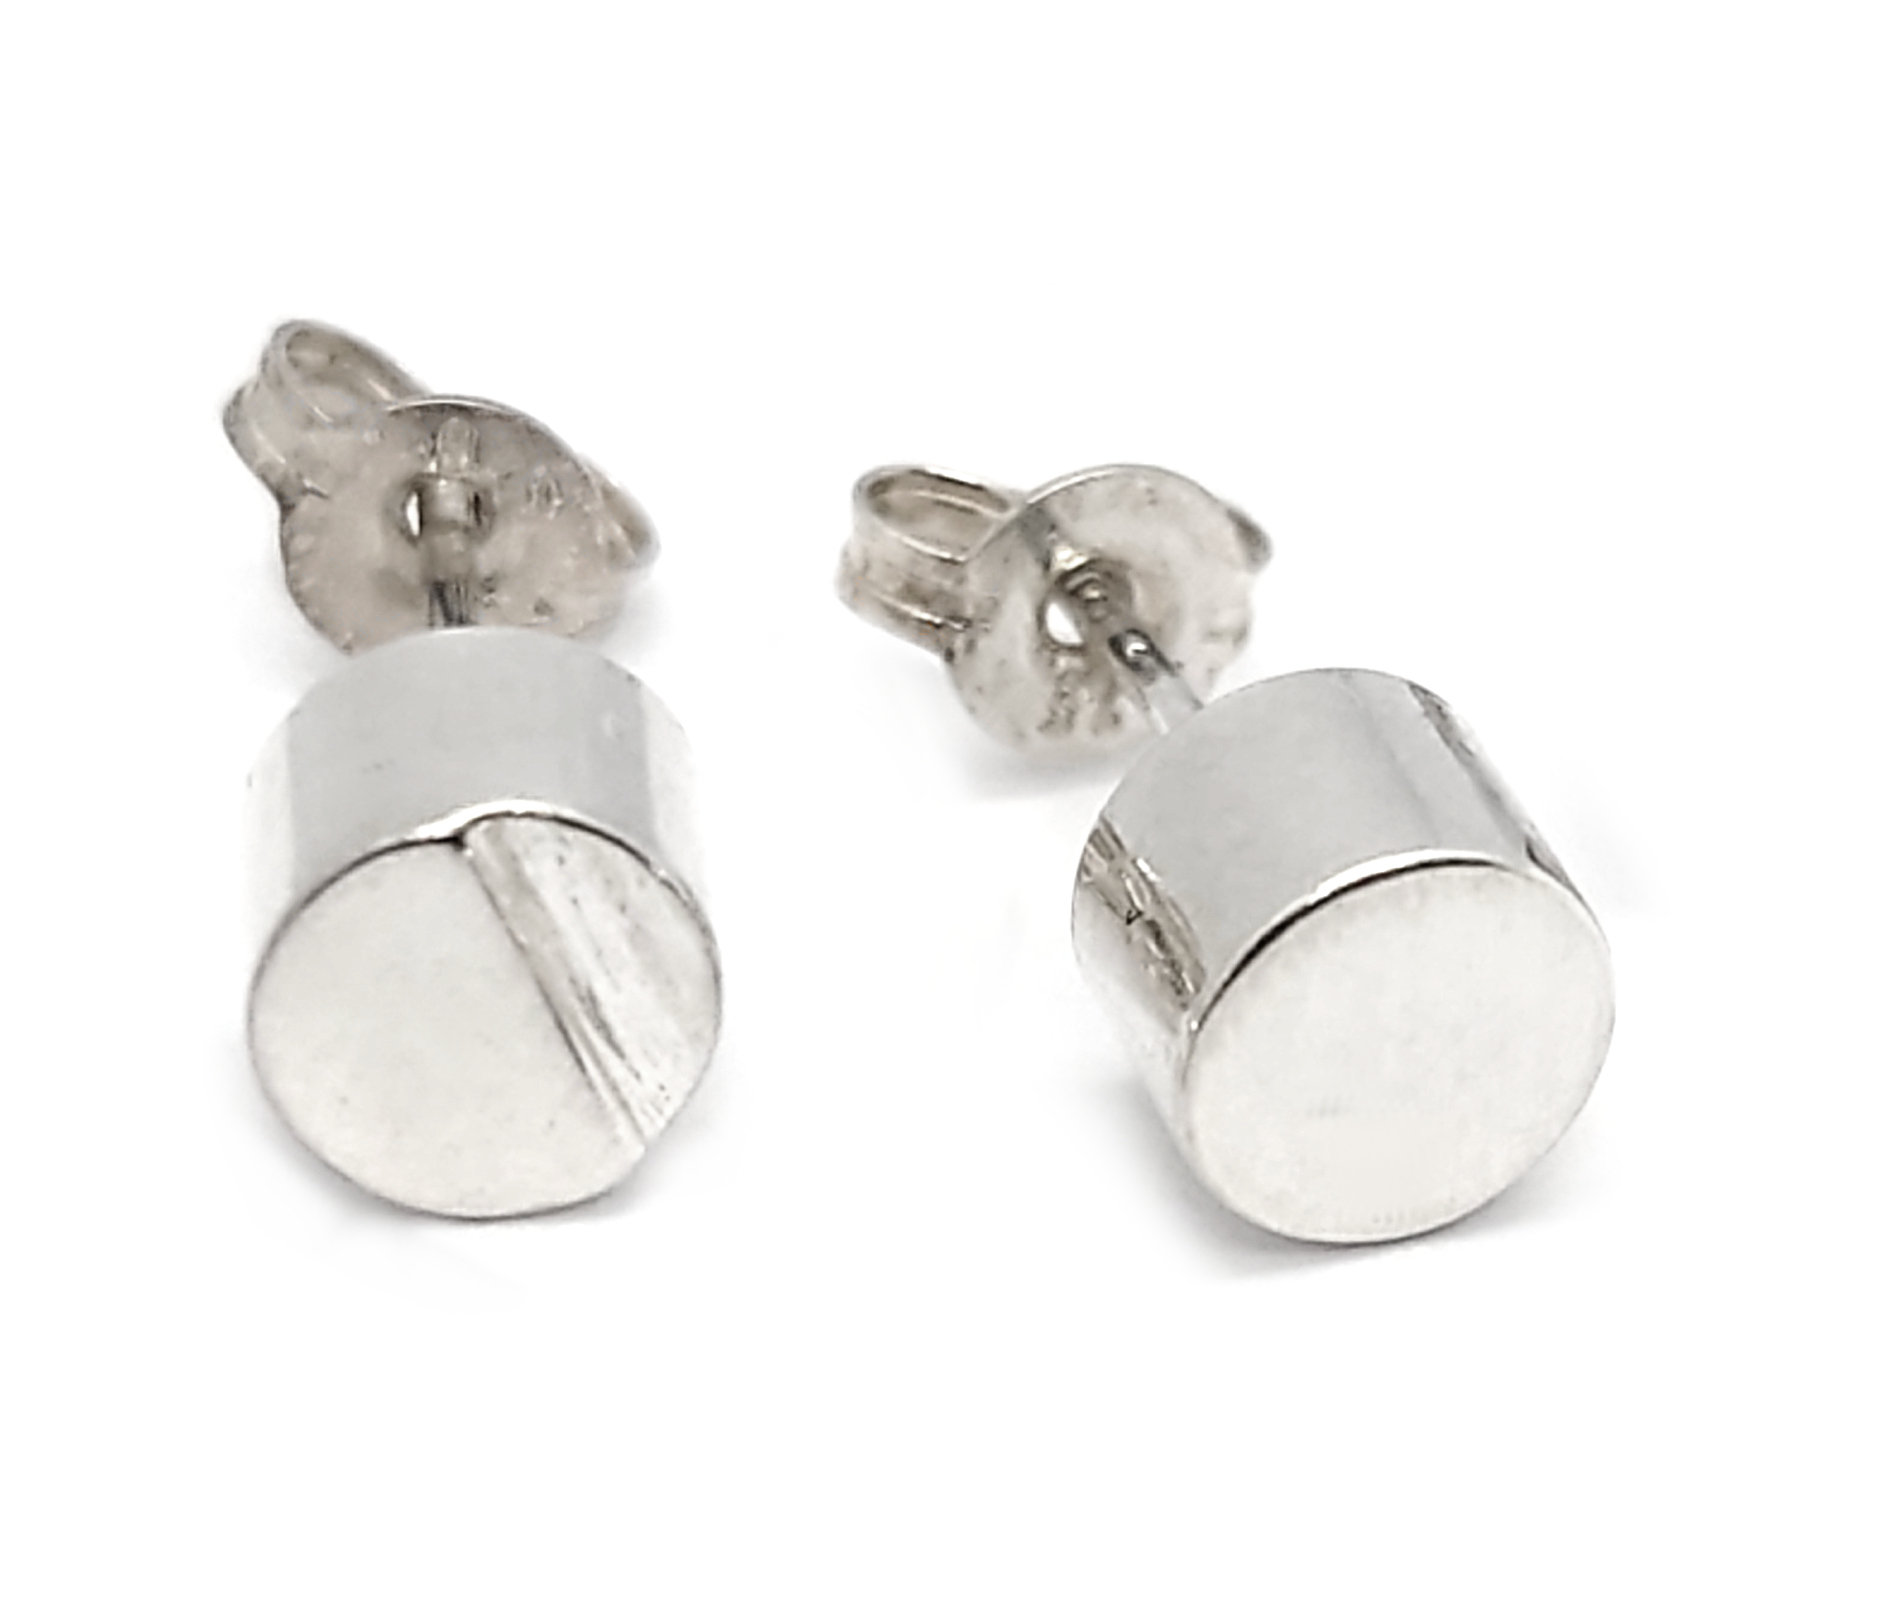 Edge Sterling Silver Circle Stud Earrings By R-Process